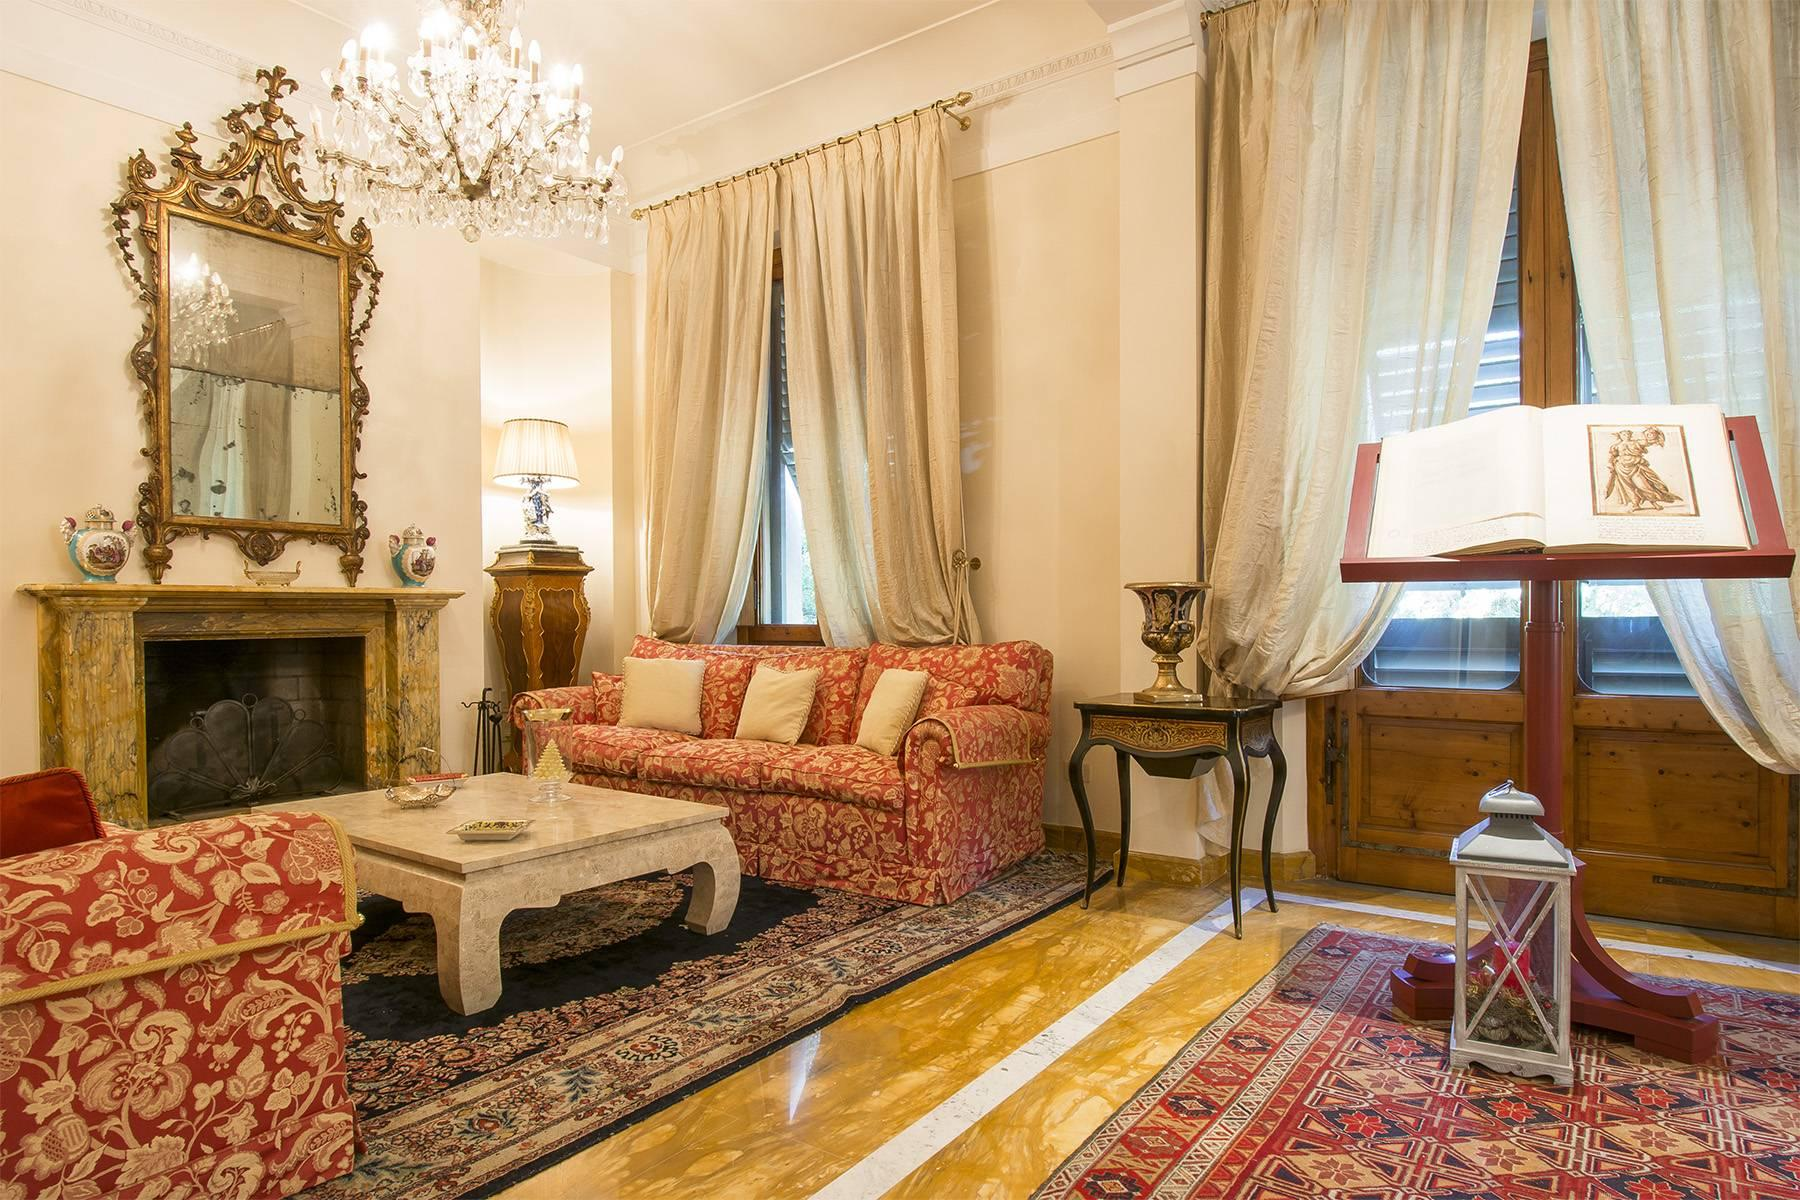 Luxury Art Nouveau Villa in the heart of Montecatini Terme - 6